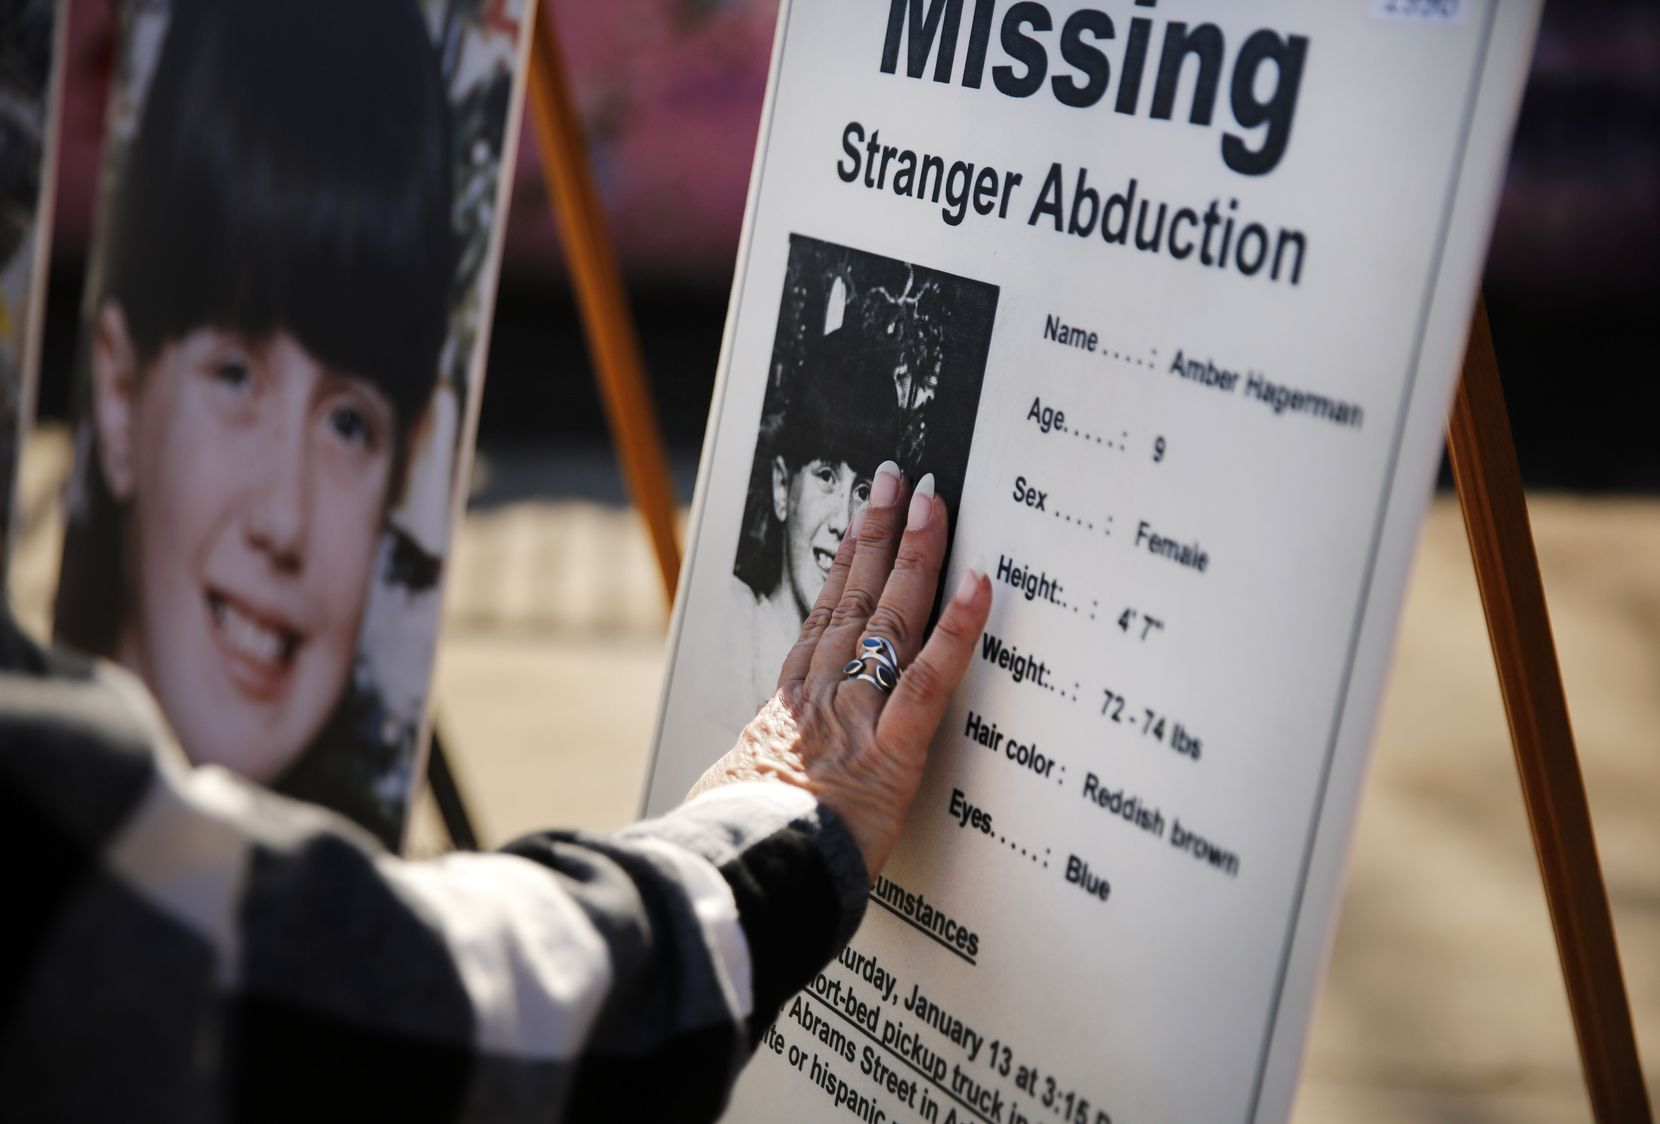 Amber Hagerman's mother Donna Williams touches a photo of her daughter on the original 'Missing' poster that was displayed during a press conference at the abduction site in E. Arlington, Texas, Wednesday, January 13, 2021.